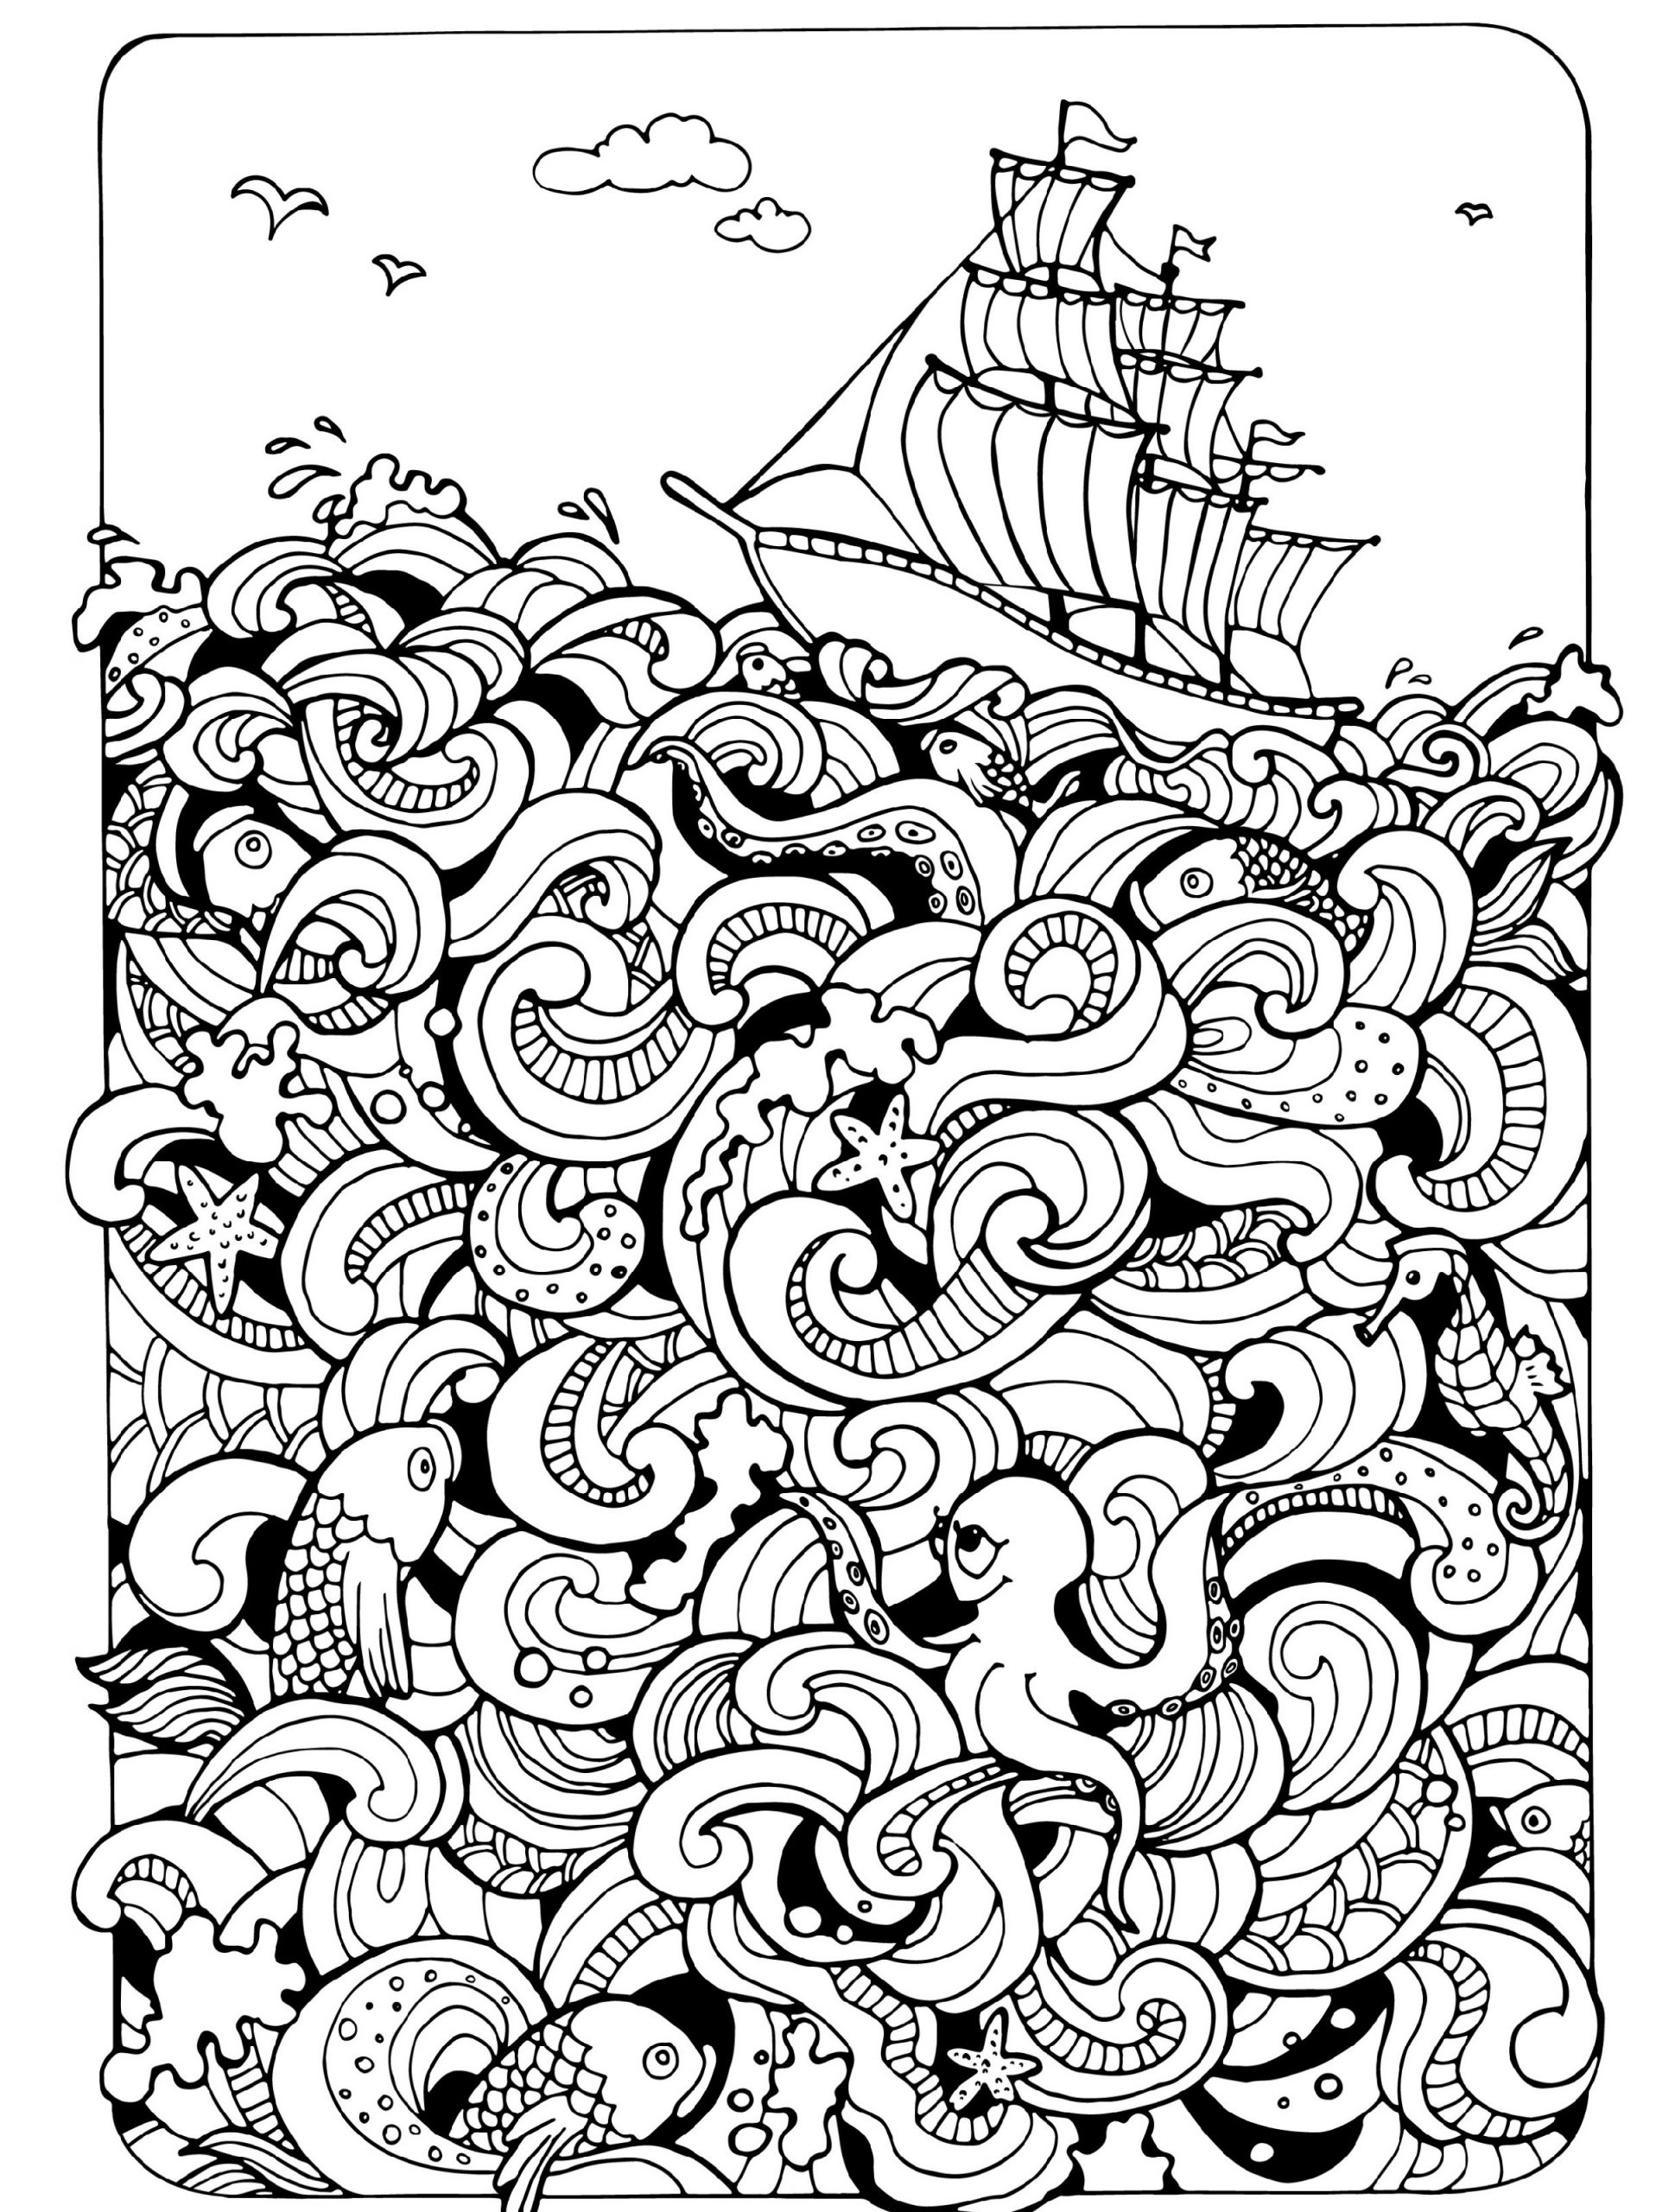 coloring prints for adults free printable abstract coloring pages for adults for adults prints coloring